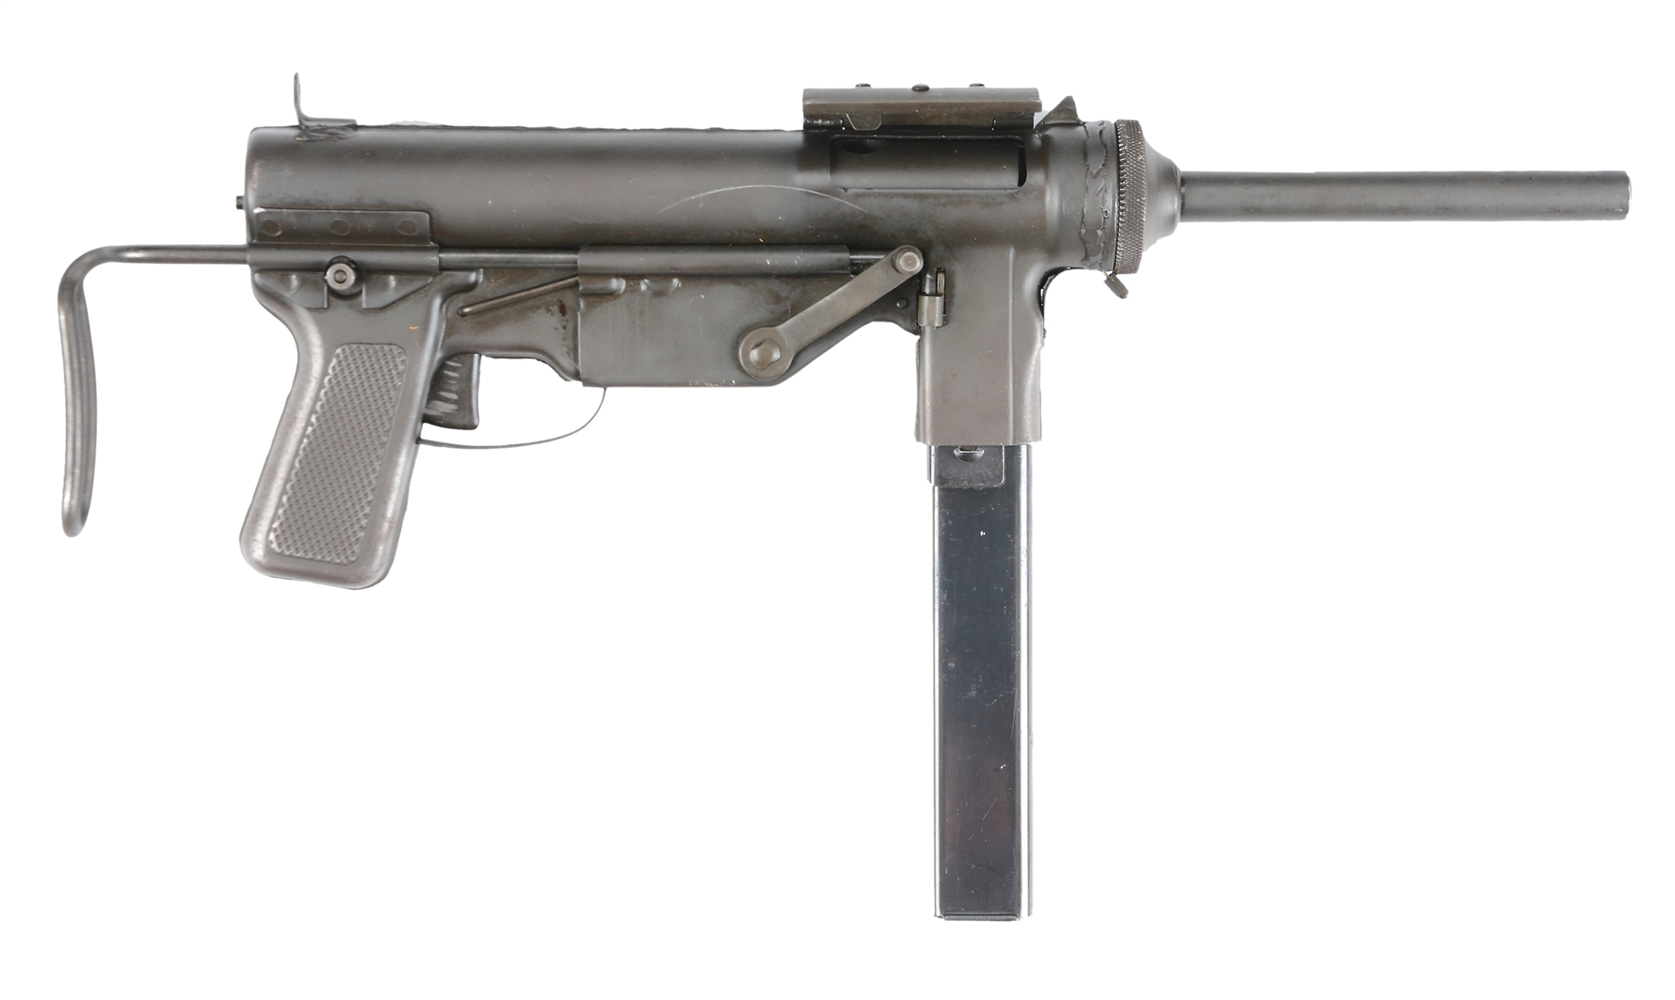 "(N) HIGH ORIGINAL CONDITION SCARCE EARLY EXPERIMENTAL M3 ""GREASE GUN""  MACHINE GUN (CURIO AND RELIC)"